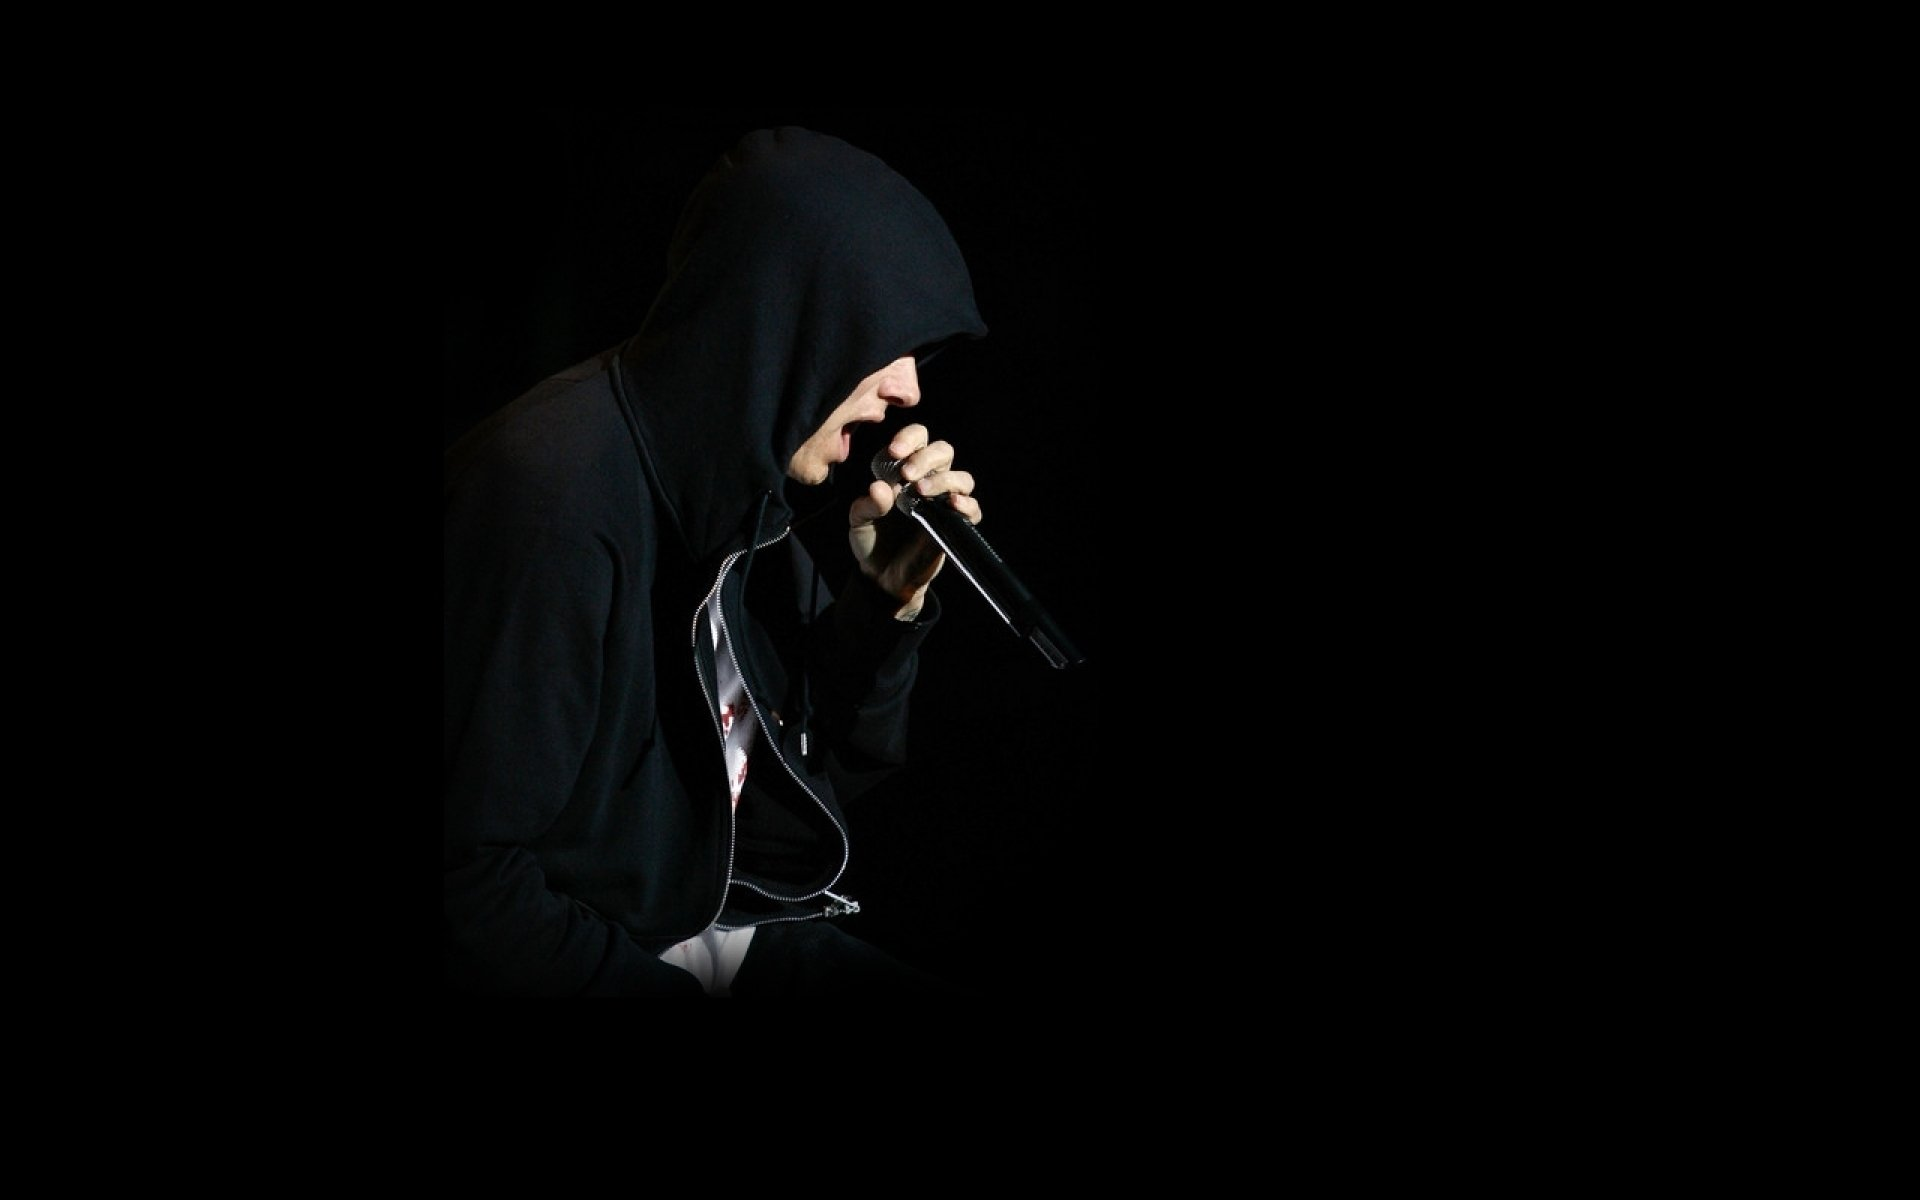 1480132 Eminem wallpaper HD wallpapers backgrounds images FHD 1920x1200